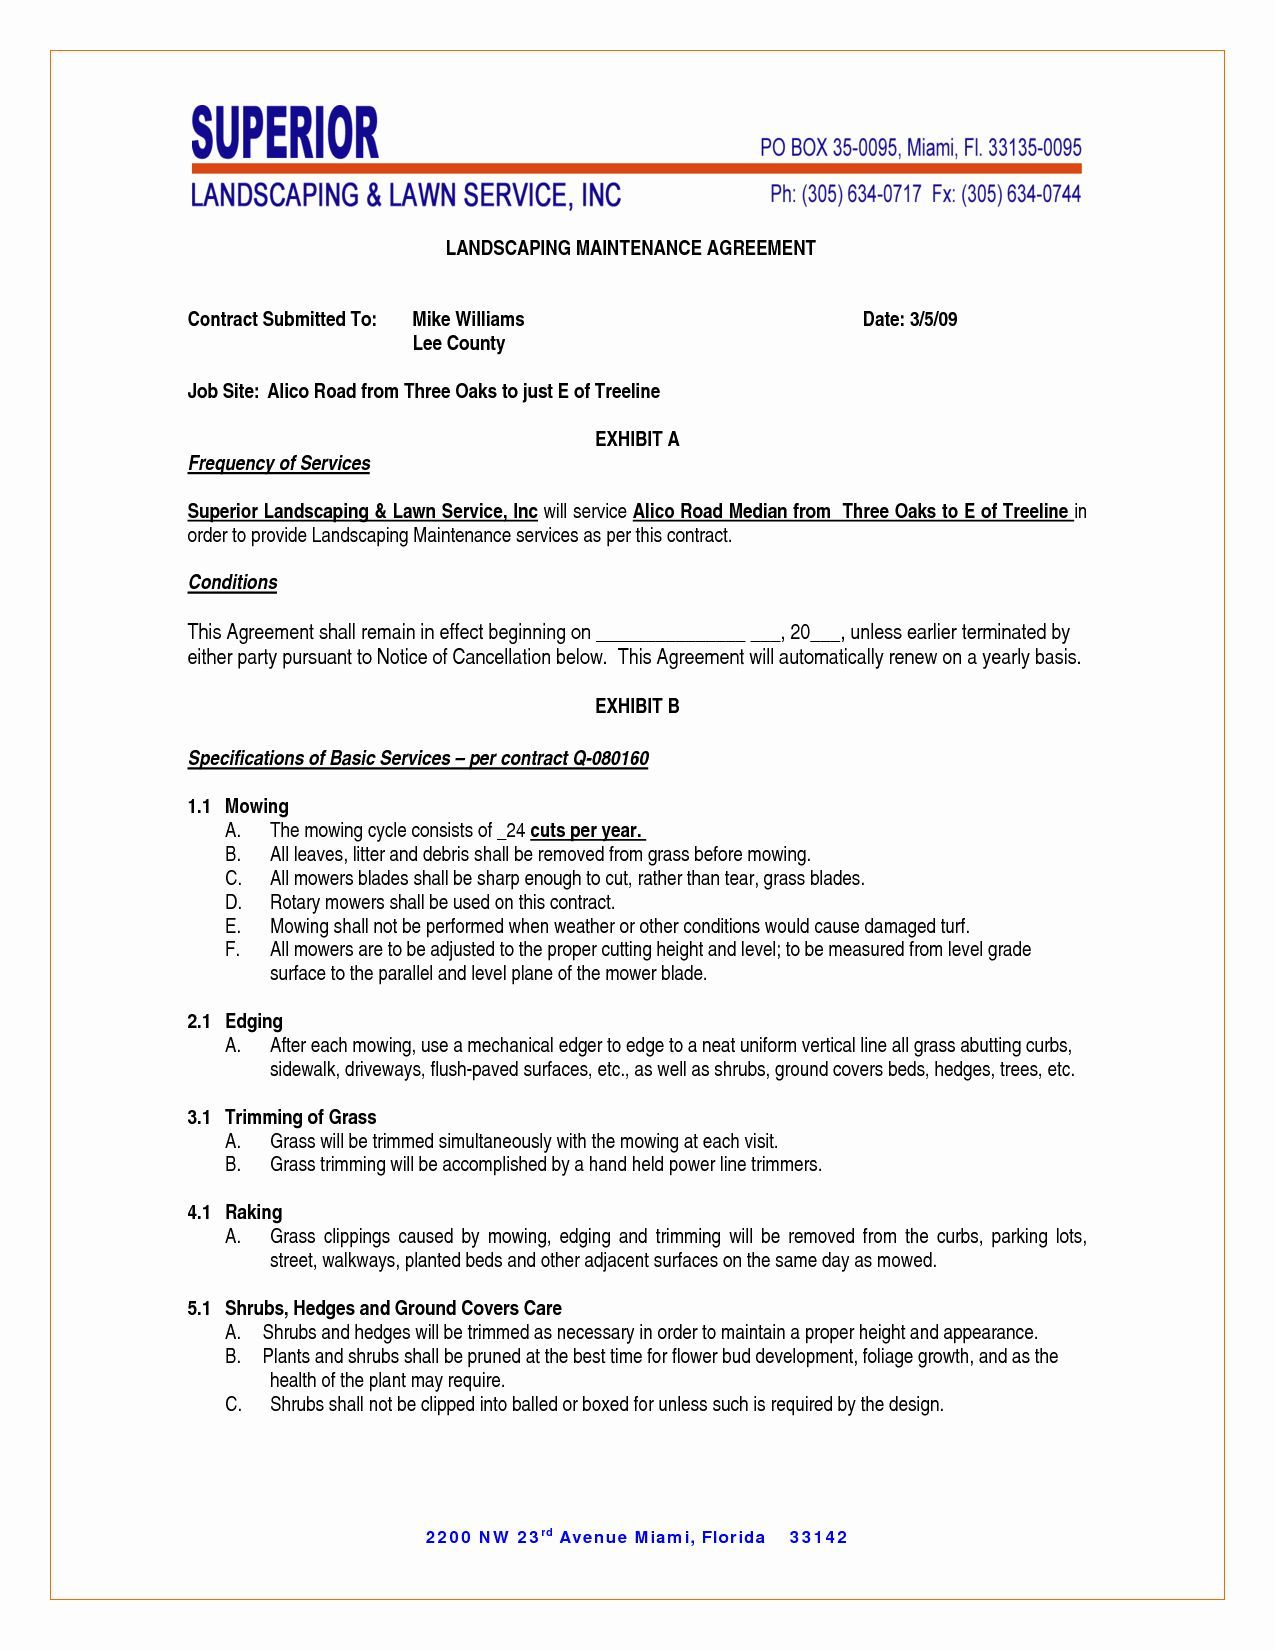 Lawn Maintenance Contract Template Free Beautiful Maintenance Contract Agreement Landscapes Lawnmaint Landscape Maintenance Lawn Maintenance Contract Template Home health care contract template